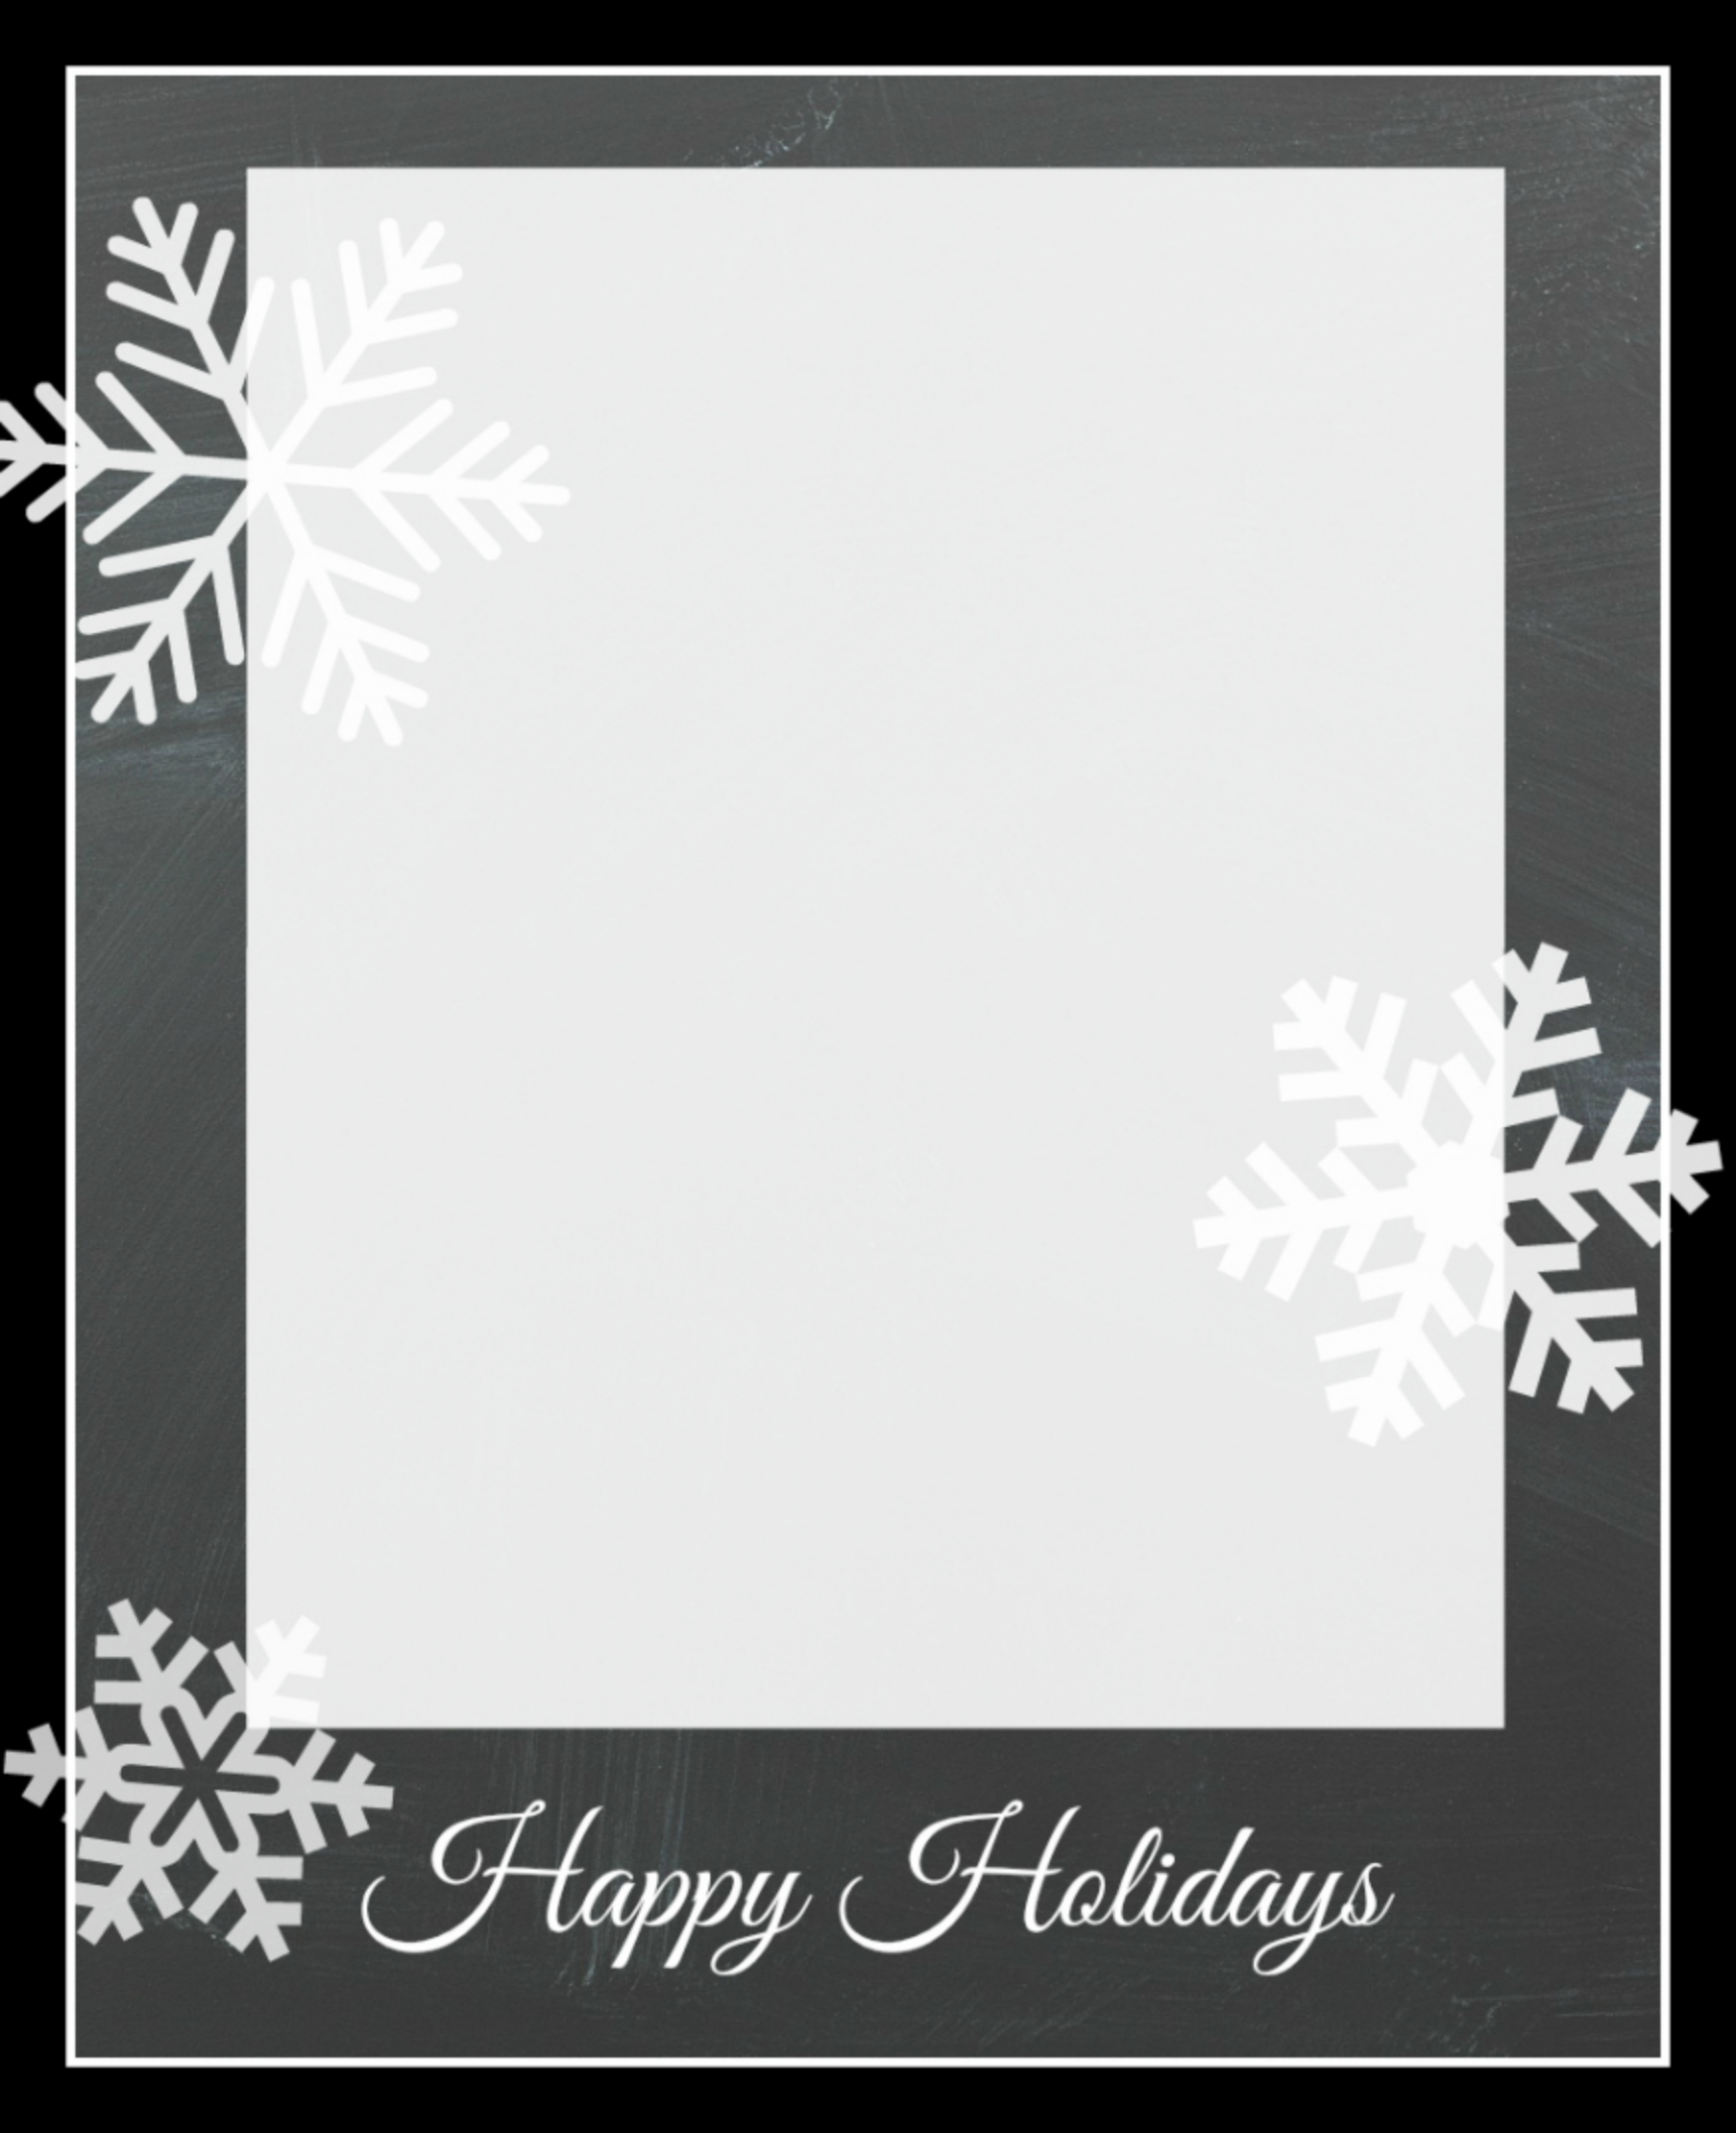 free christmas card template heres the file to save then add your pictures snowflakecard3 - Free Photo Christmas Card Templates